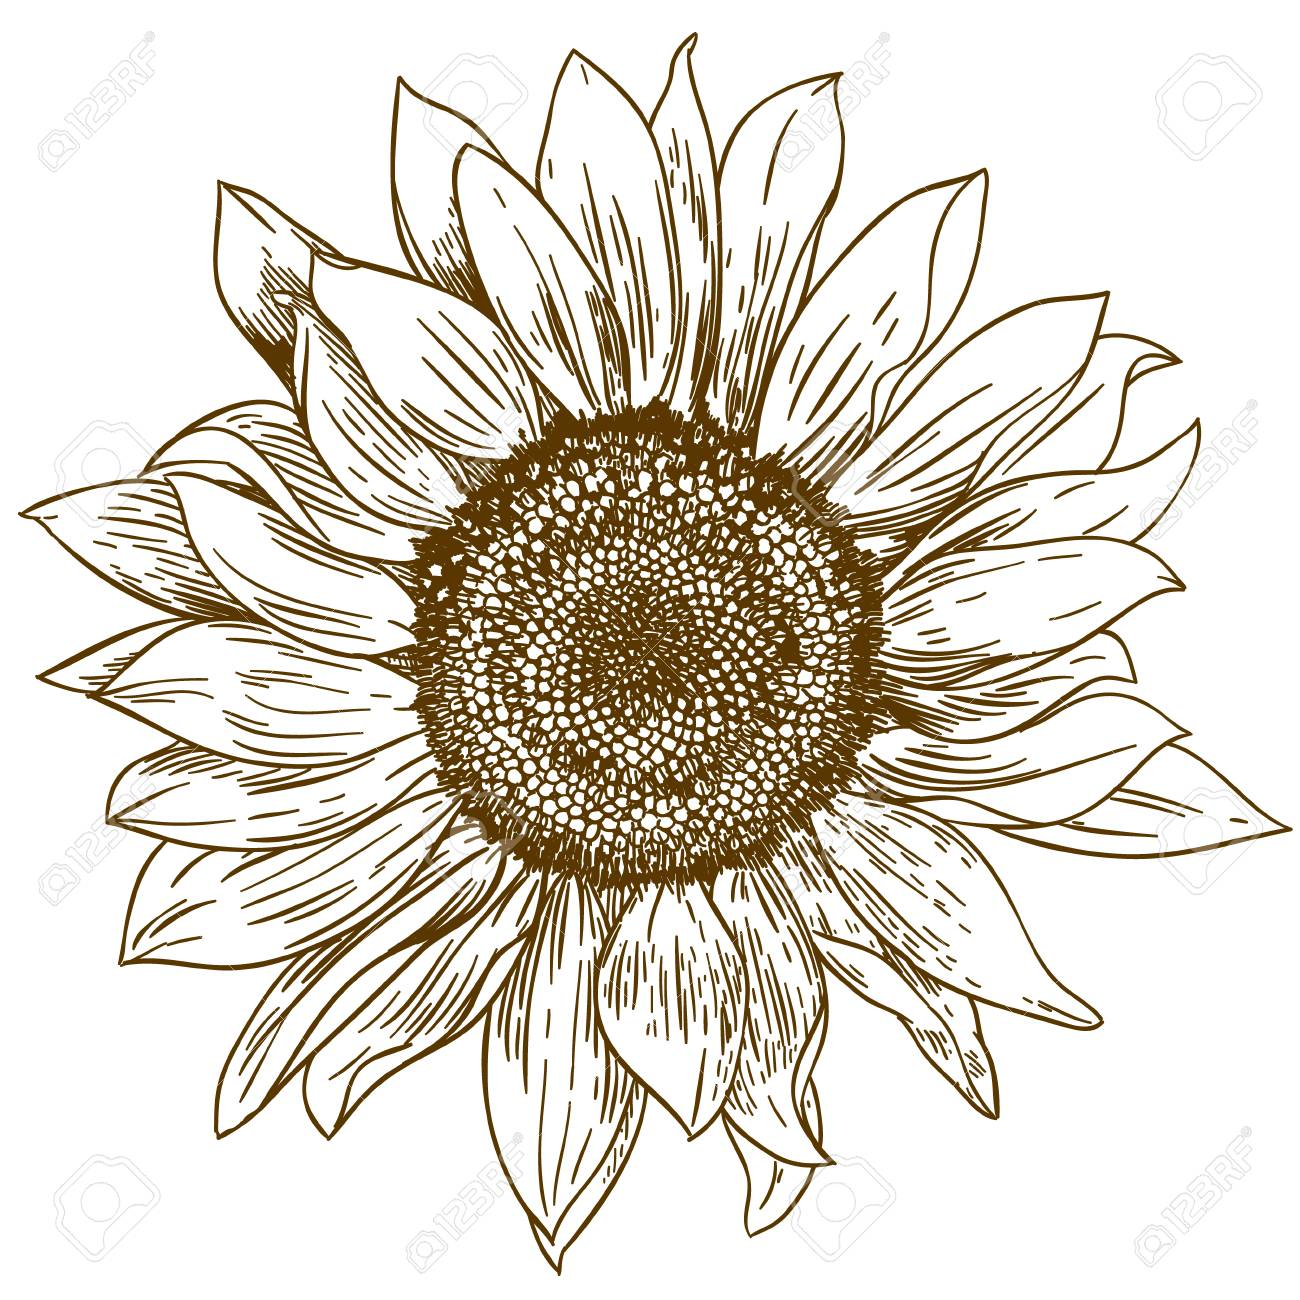 Vector antique engraving drawing illustration of big sunflower isolated on white background - 90792347